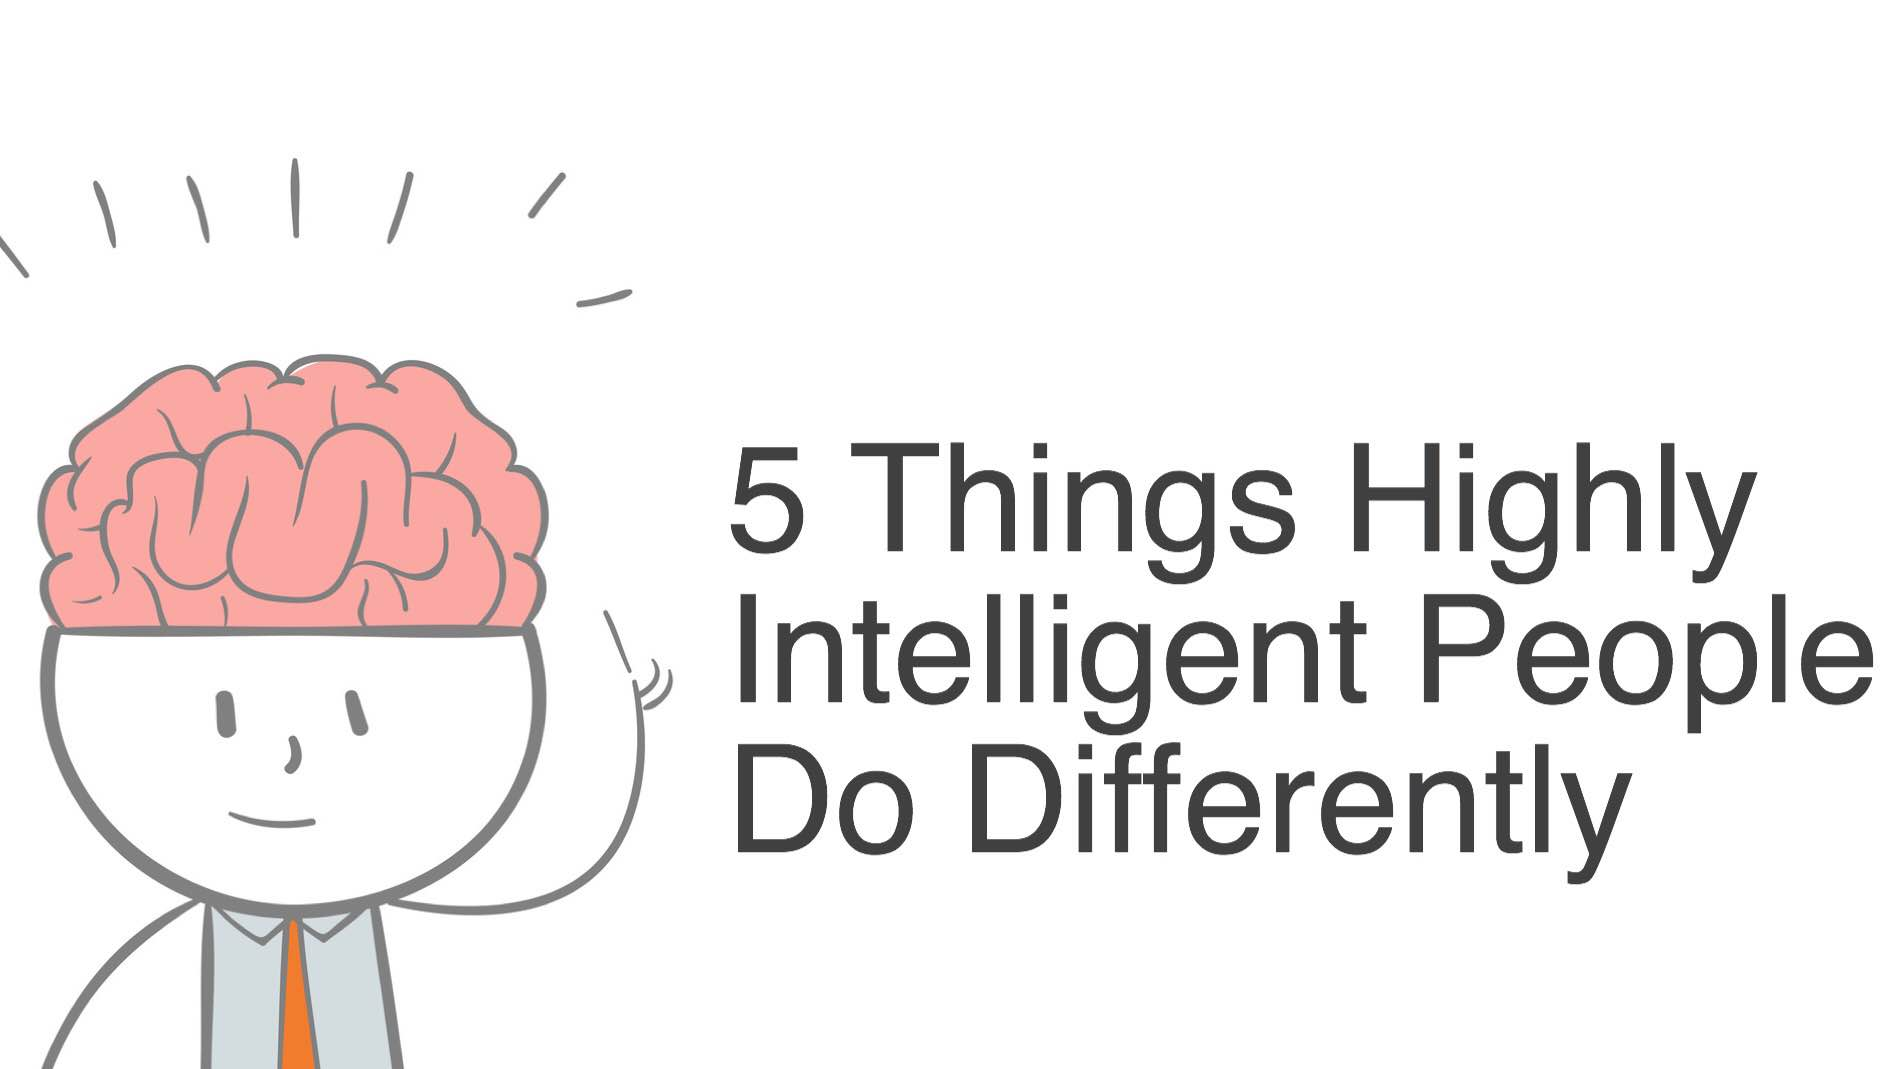 5-Things-Highly-Intelligent-People-Do-Differently.jpg